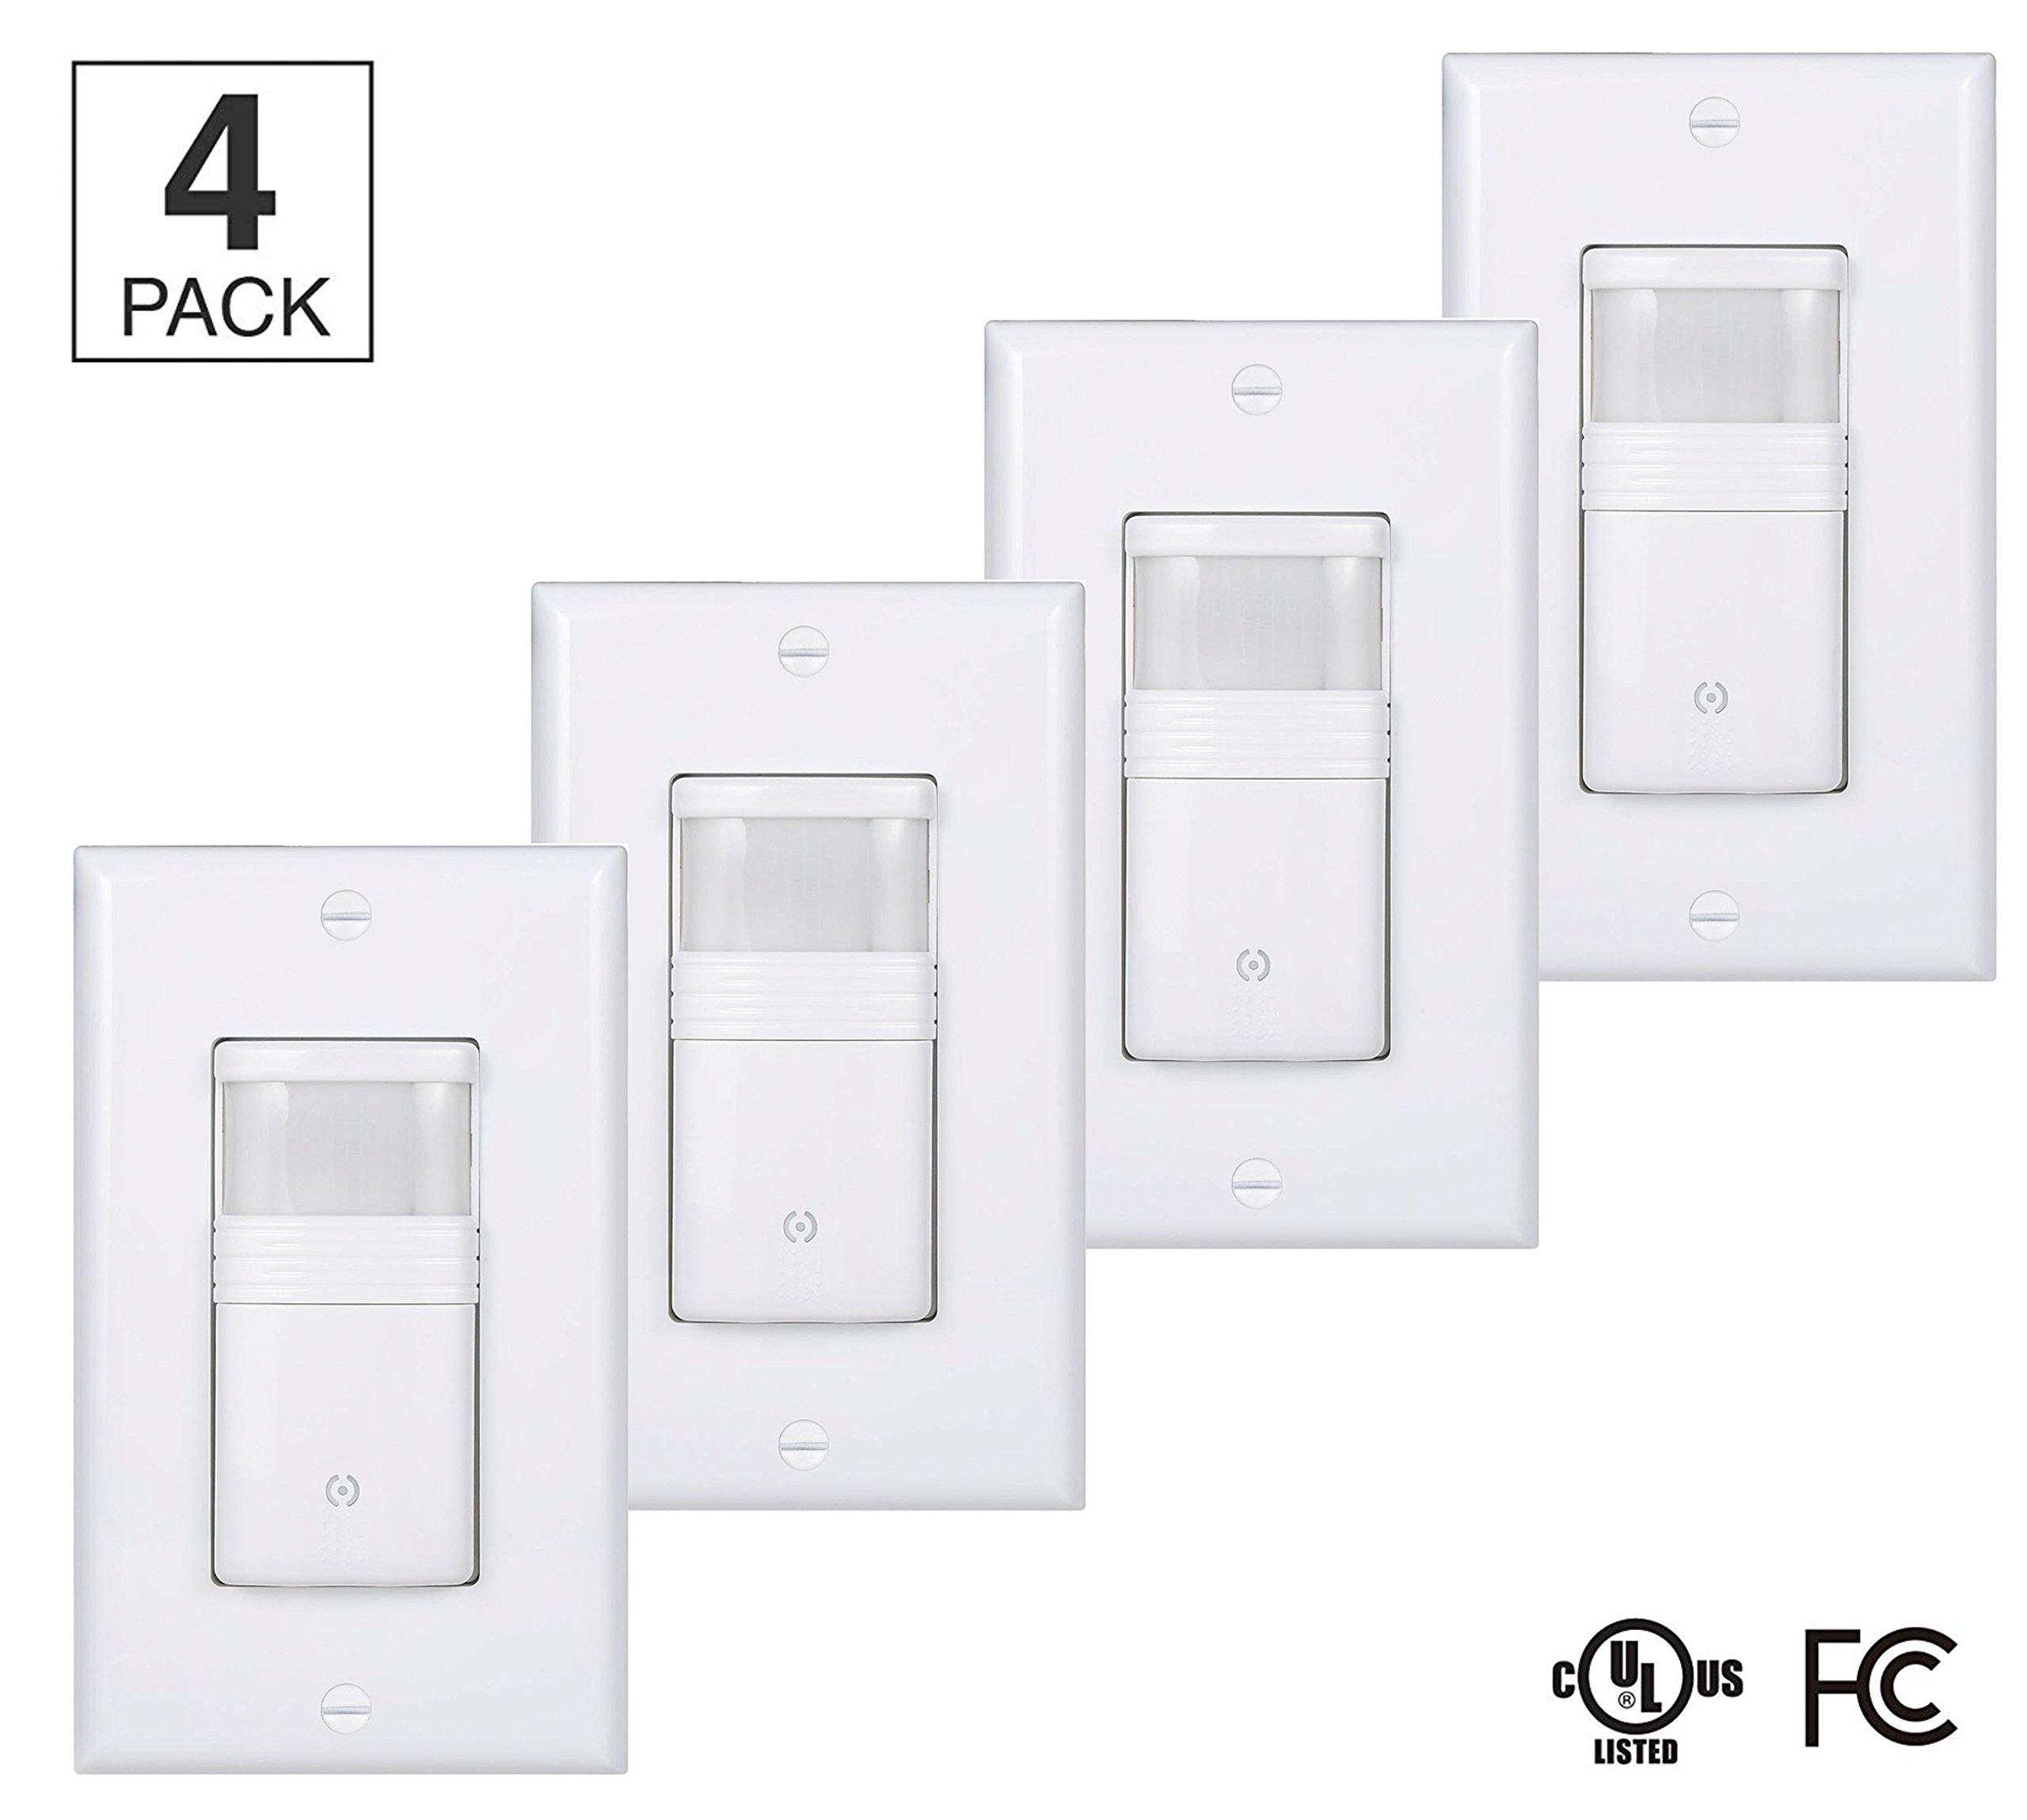 (Pack of 4) White Motion Sensor Light Switch – NEUTRAL Wire Required – For Indoor Use – Vacancy & Occupancy Modes – Title 24, UL Certified – Adjustable Timer